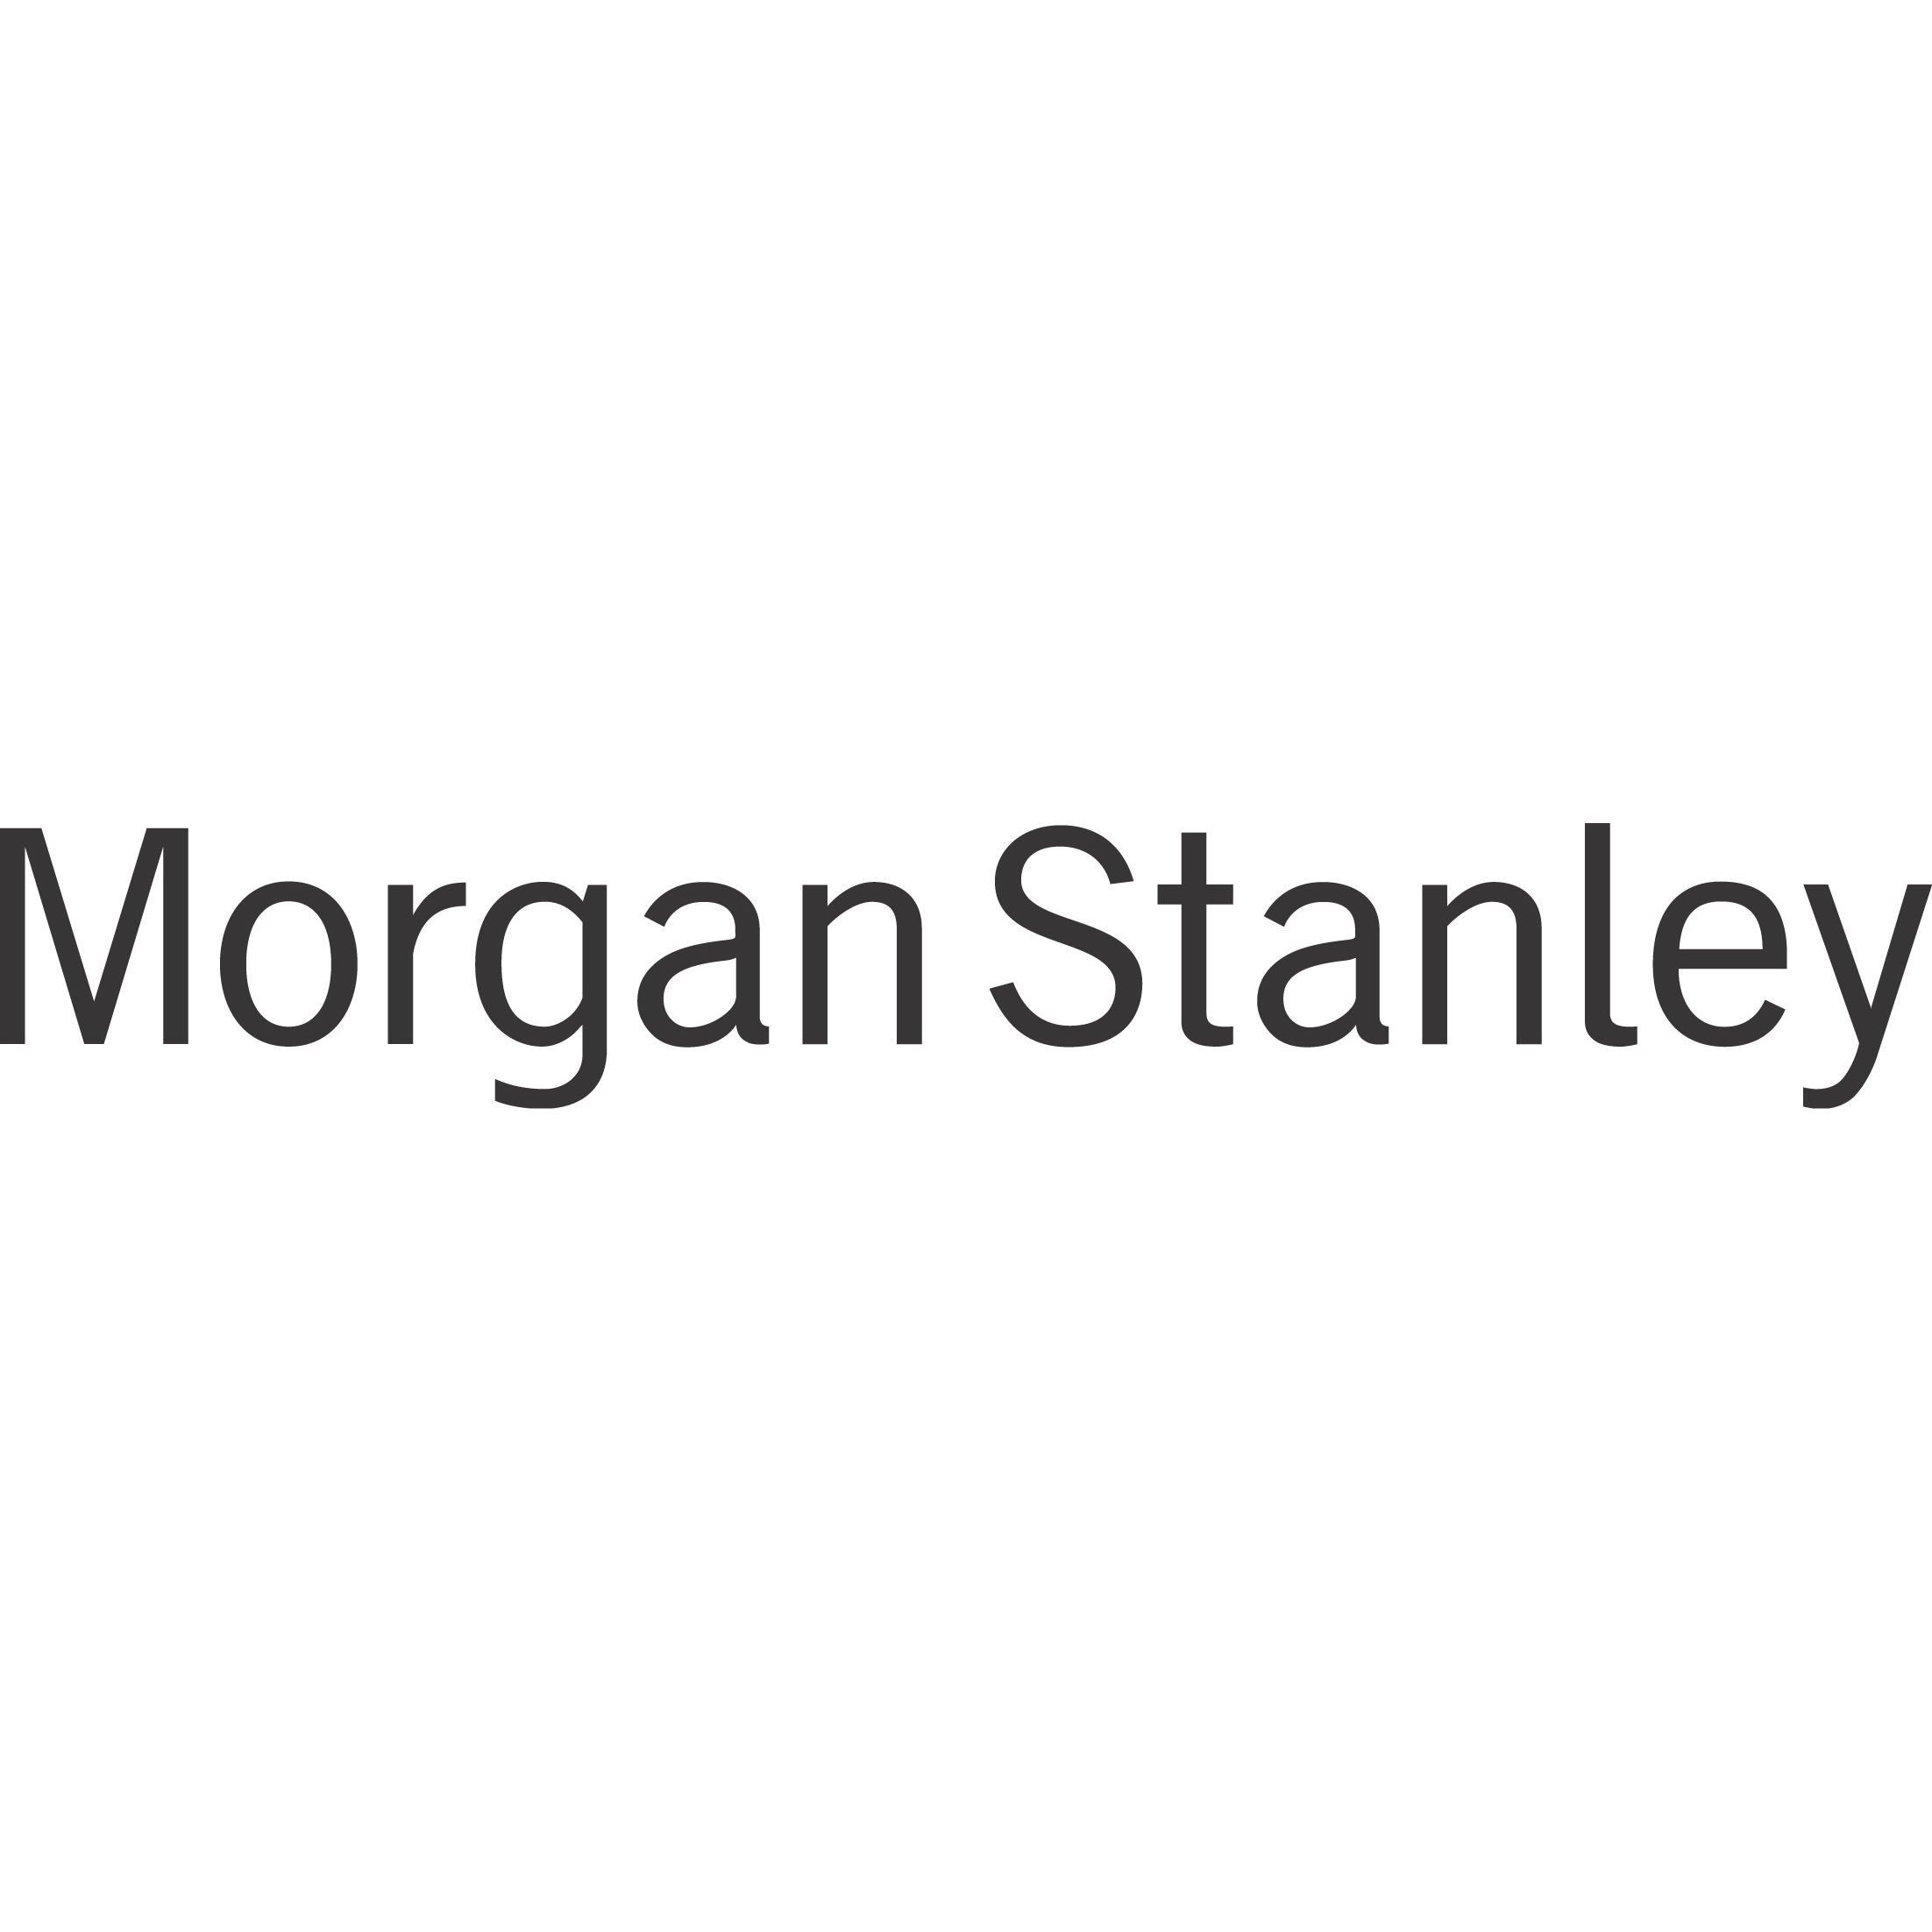 Nicholas Salamone - Morgan Stanley | Financial Advisor in Florham Park,New Jersey